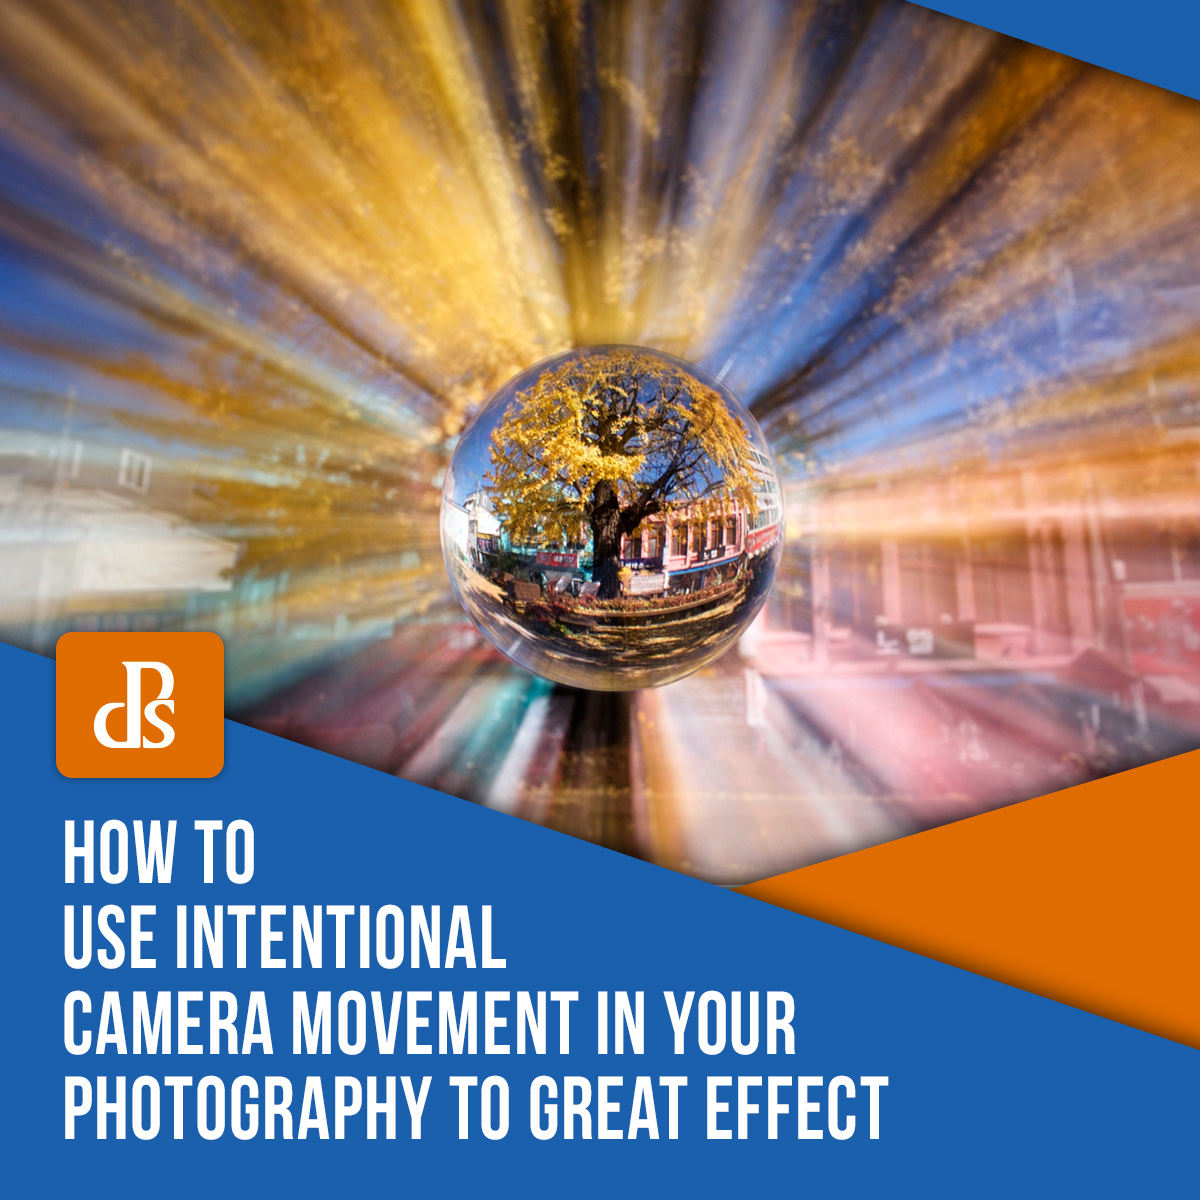 How to Use Intentional Camera Movement